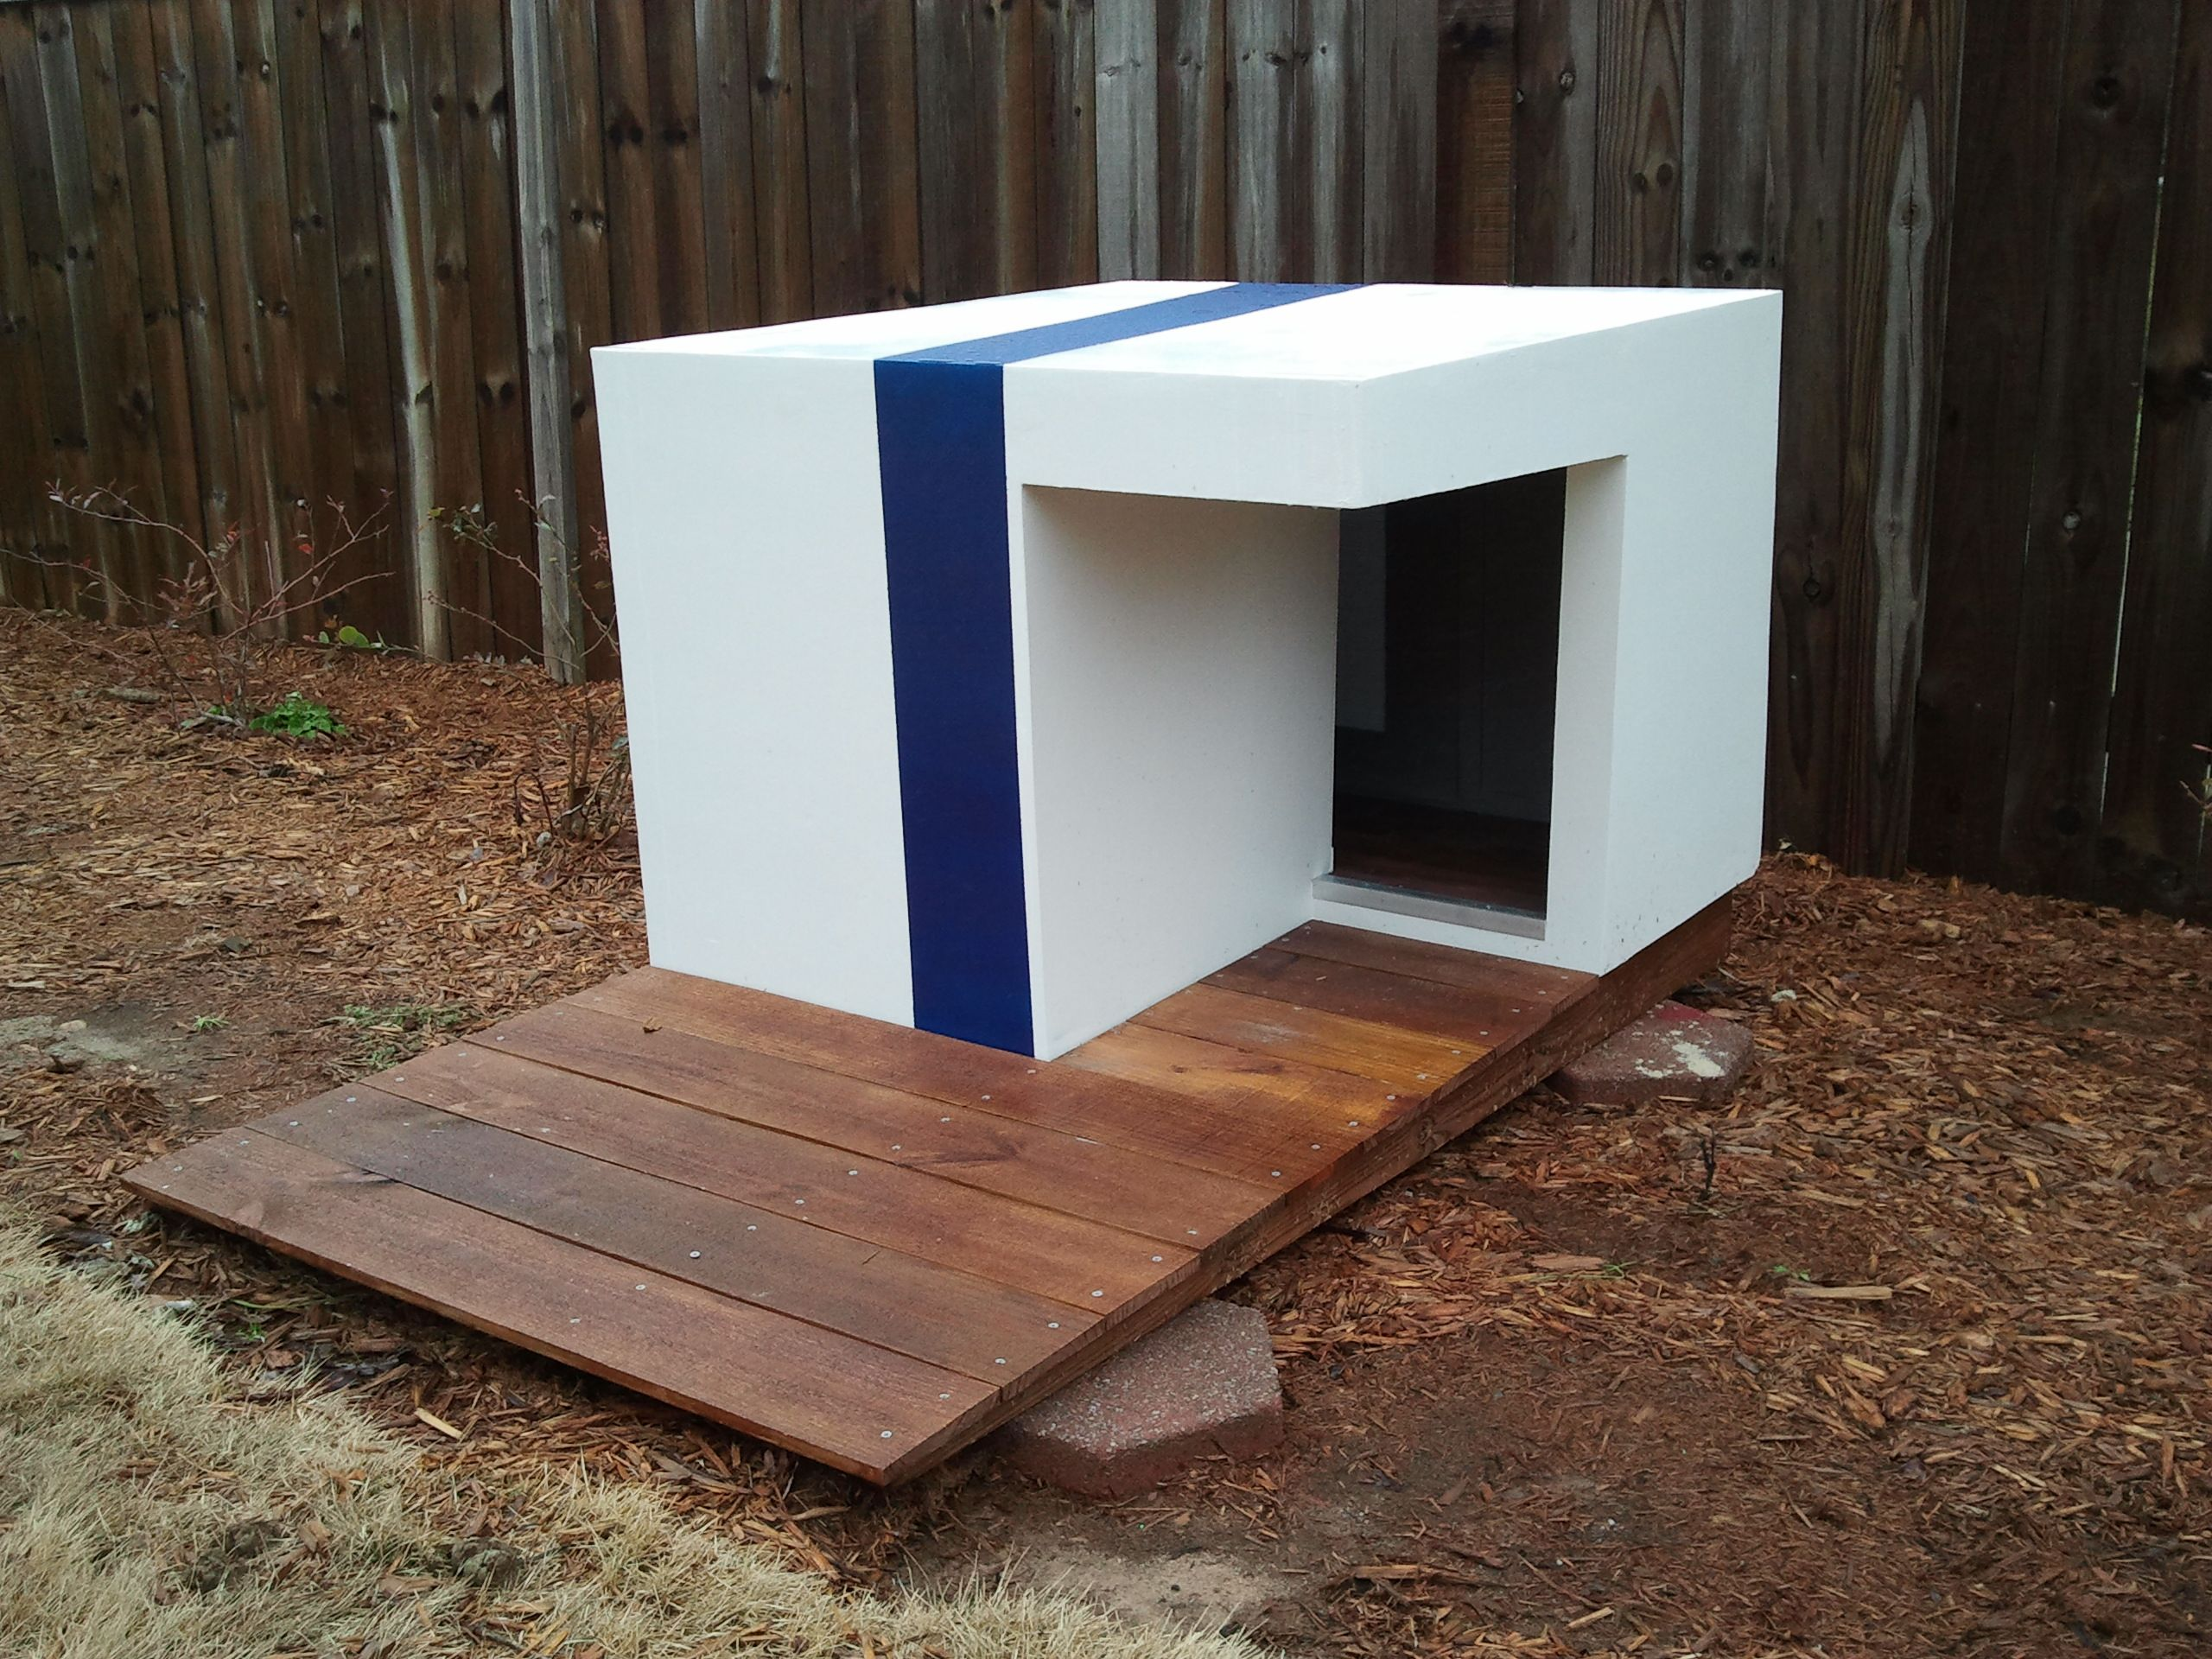 custom dog house  these dogs are going to live in style they'll  - custom dog house  these dogs are going to live in style they'